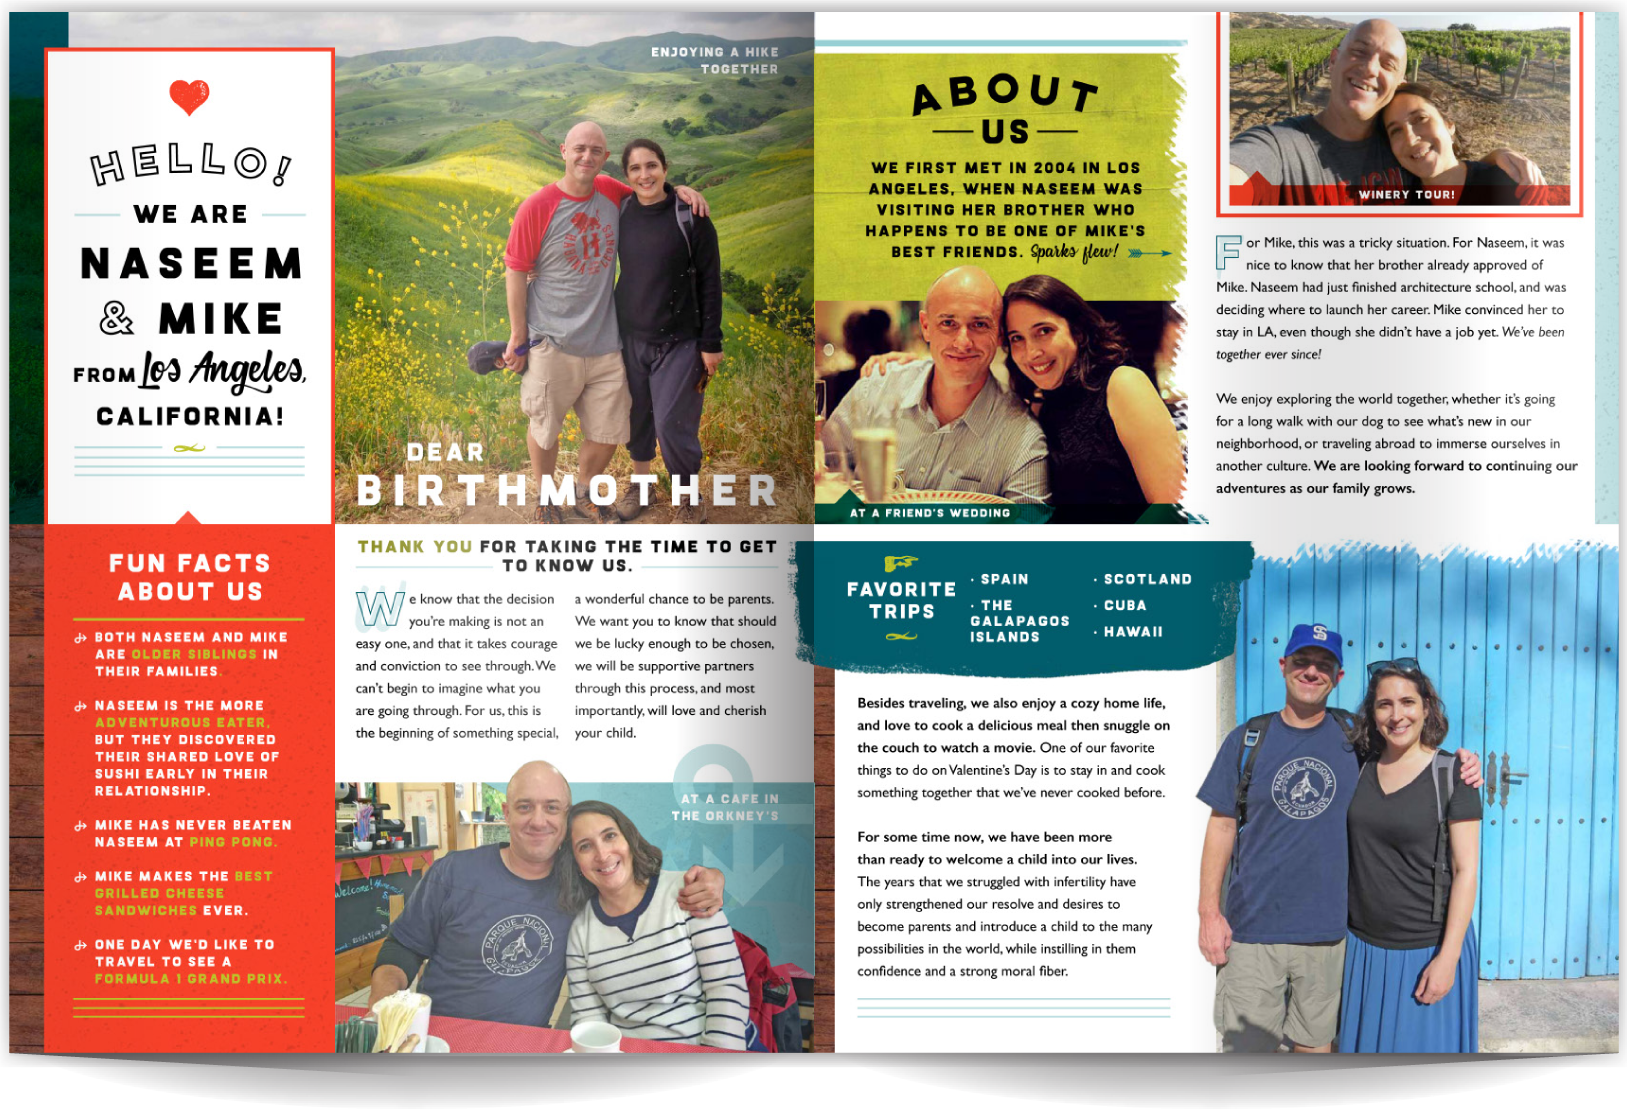 PAGE LAYOUT STYLE 12 - Casual, warm and playful describes both this couple and their profile! Bold colors, a retro flair, and photos show their great smiles and personality. Fun graphic elements take second chair to the photos and colors, but add warmth and a playful feel to the layout.